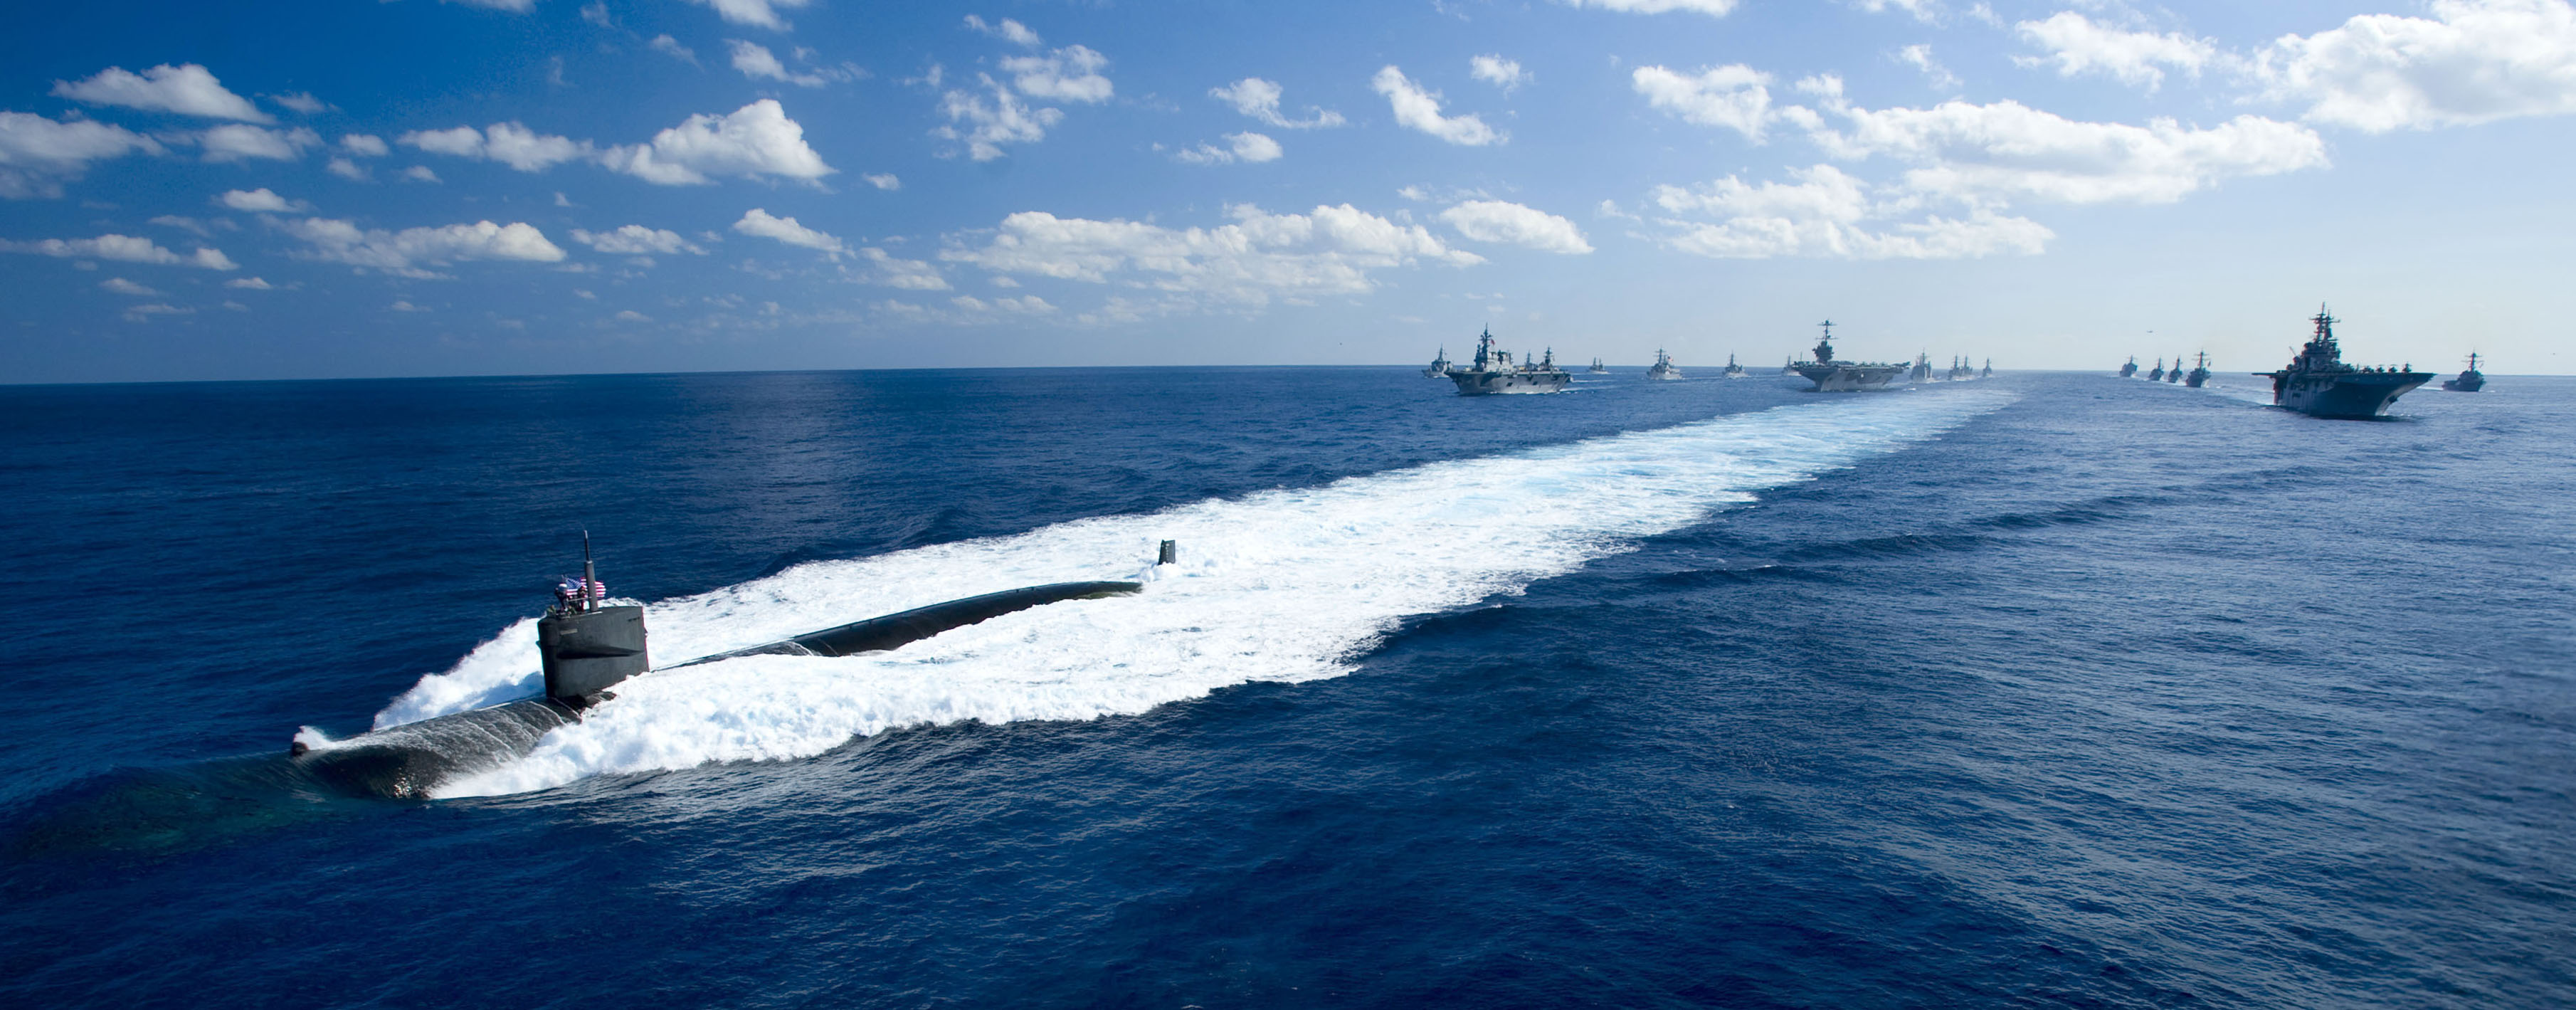 https://upload.wikimedia.org/wikipedia/commons/7/7d/US_Navy_101210-N-6720T-142_The_Los_Angeles-class_attack_submarine_USS_Houston_(SSN_713)_leads_a_formation_of_ships_from_USS_George_Washington_(CVN.jpg